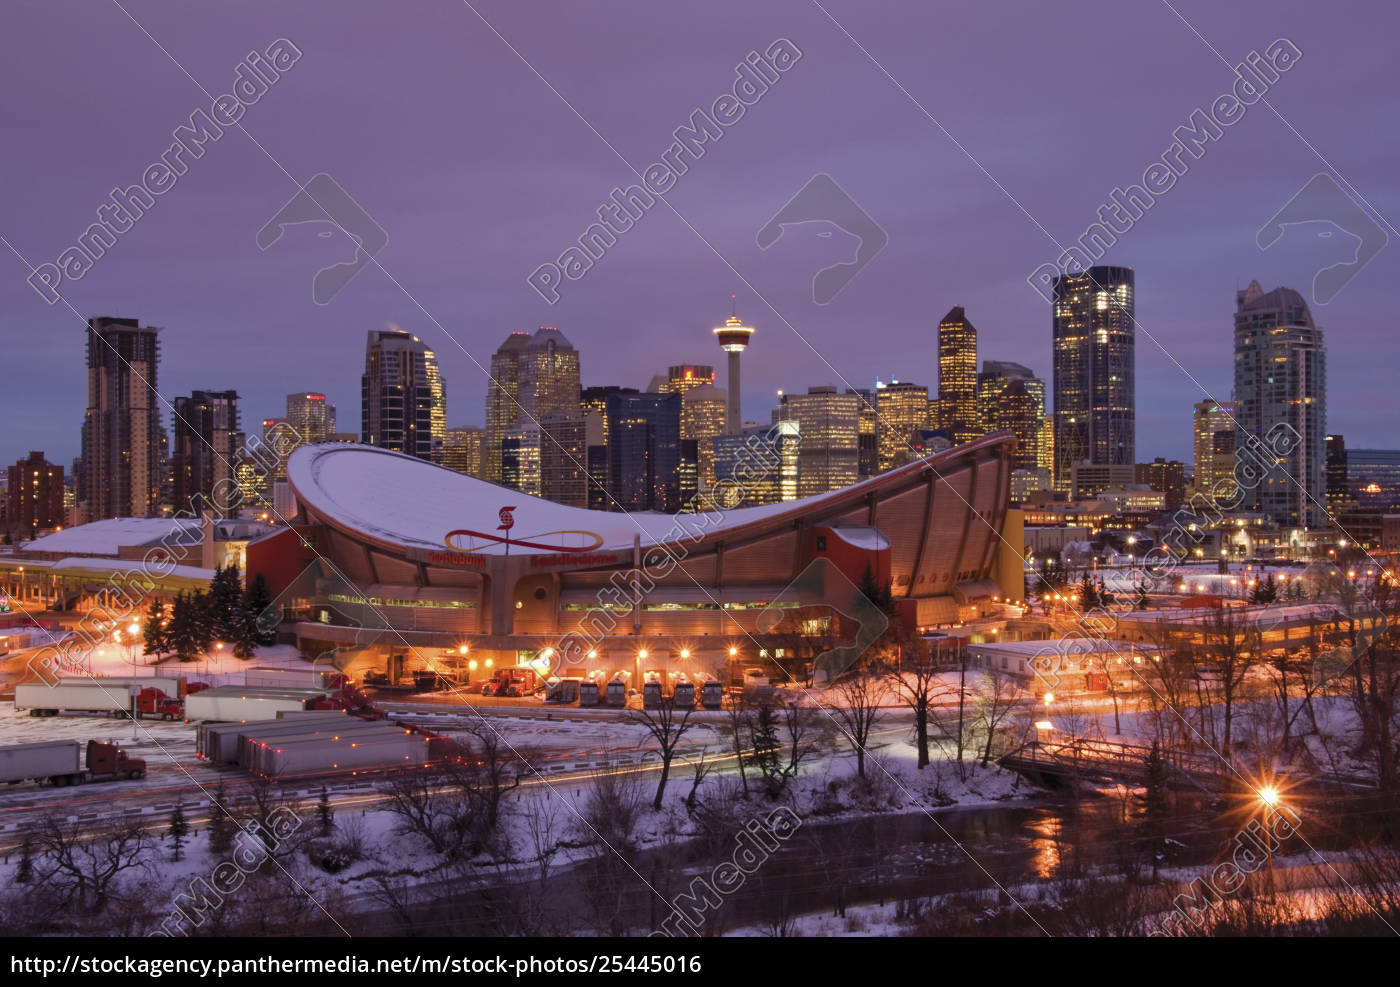 Rights Managed Image 25445016 Winter Sunrise On The City Of Calgary And The Saddledome